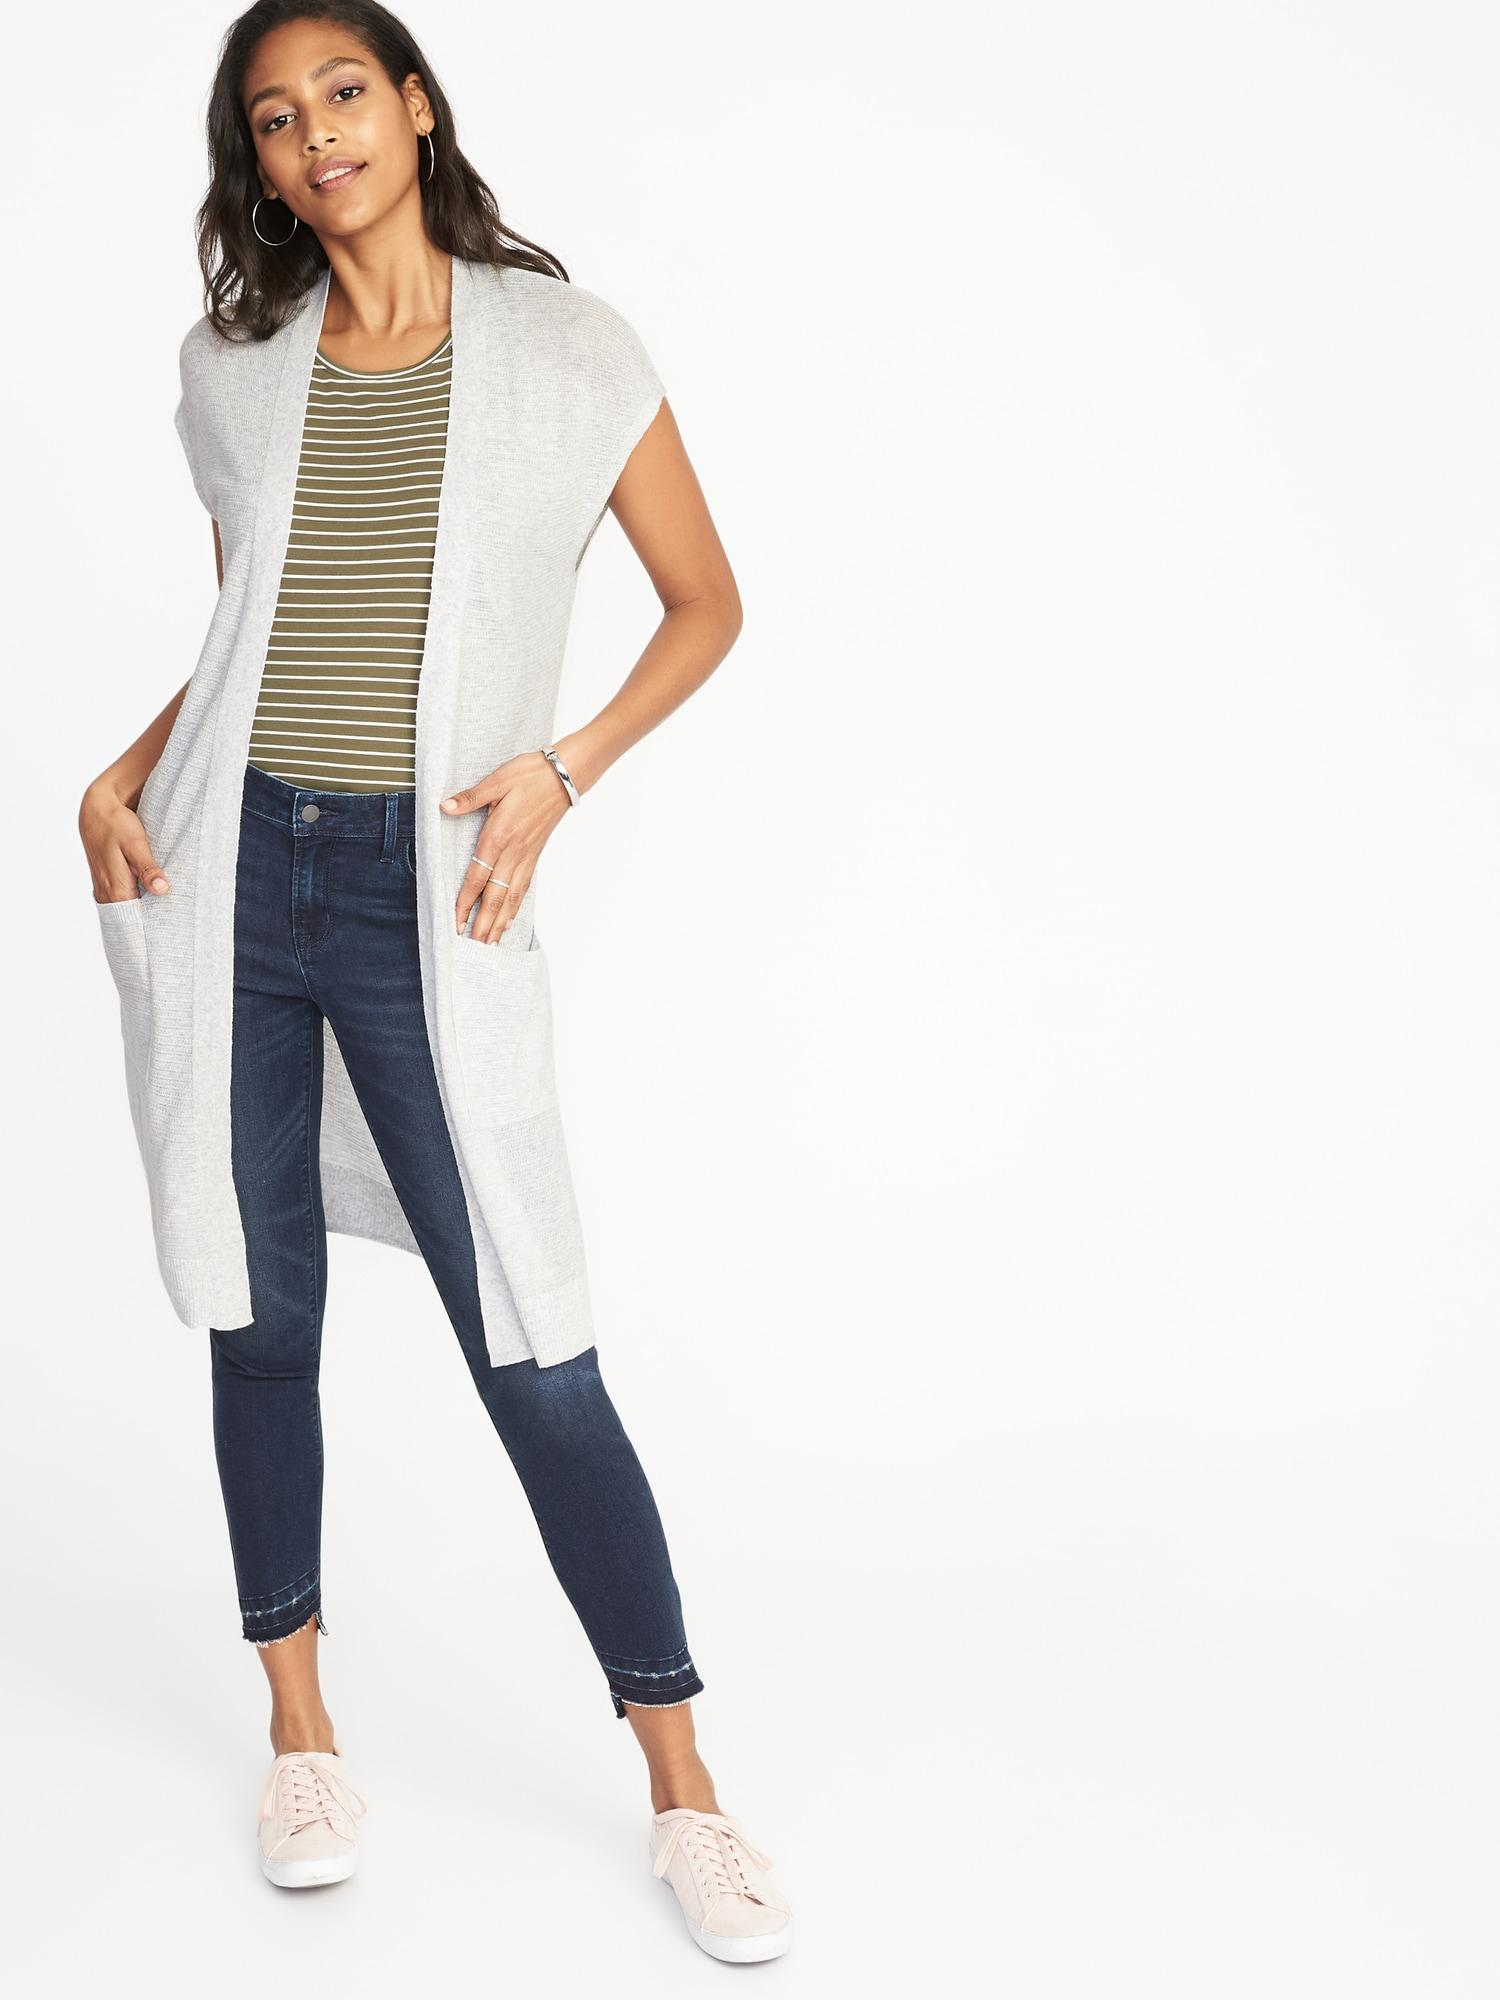 Lyst - Old Navy Super-long Open-front Sweater in Gray b8d12d79e